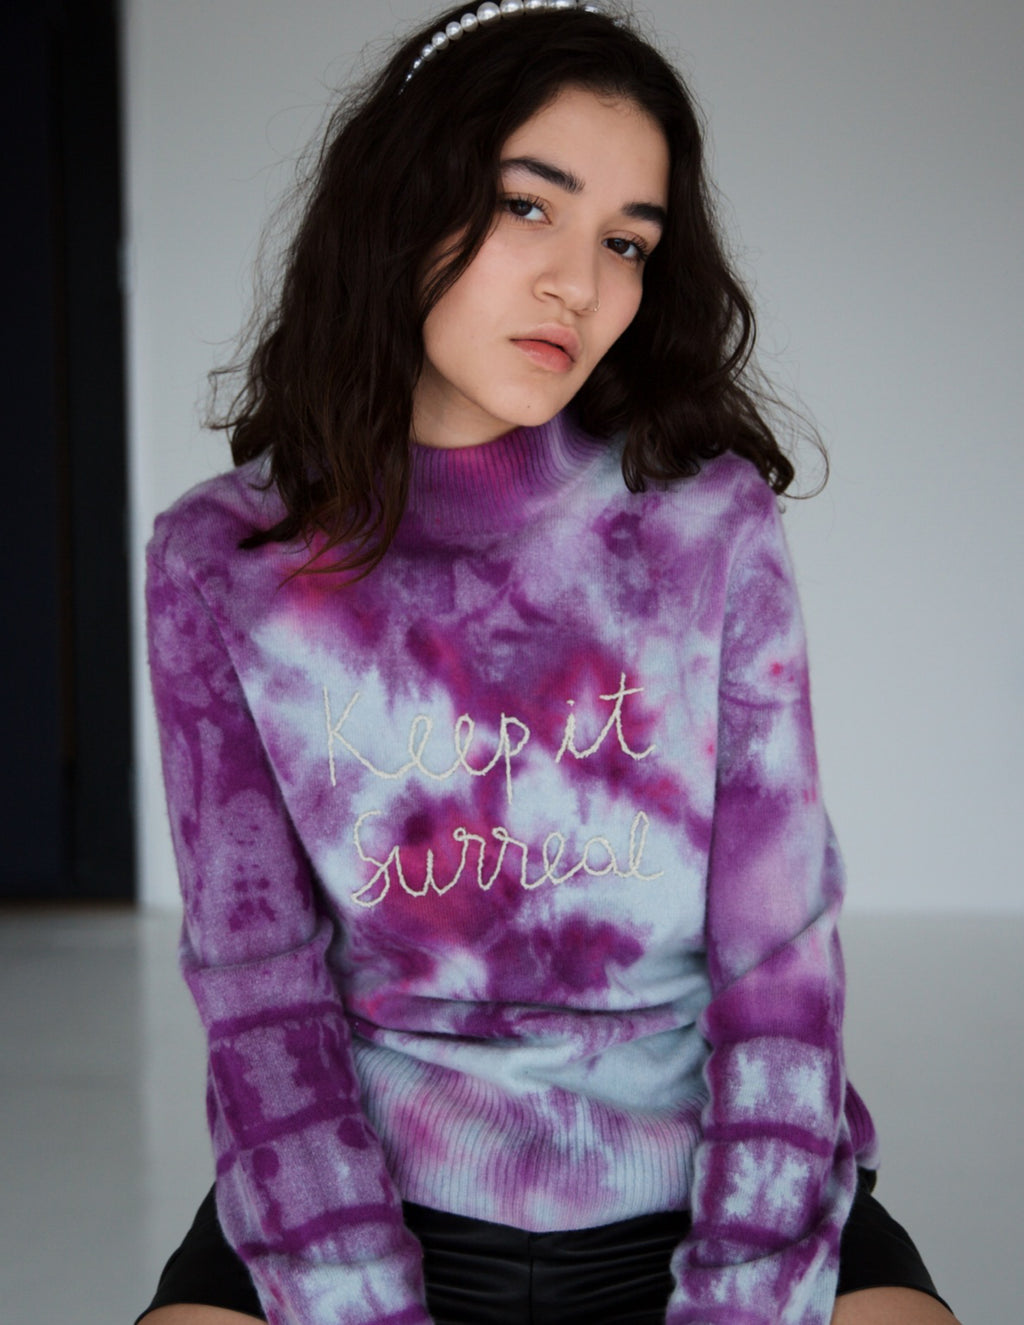 KEEP IT SURREAL TIE DYE CASHMERE SWEATER